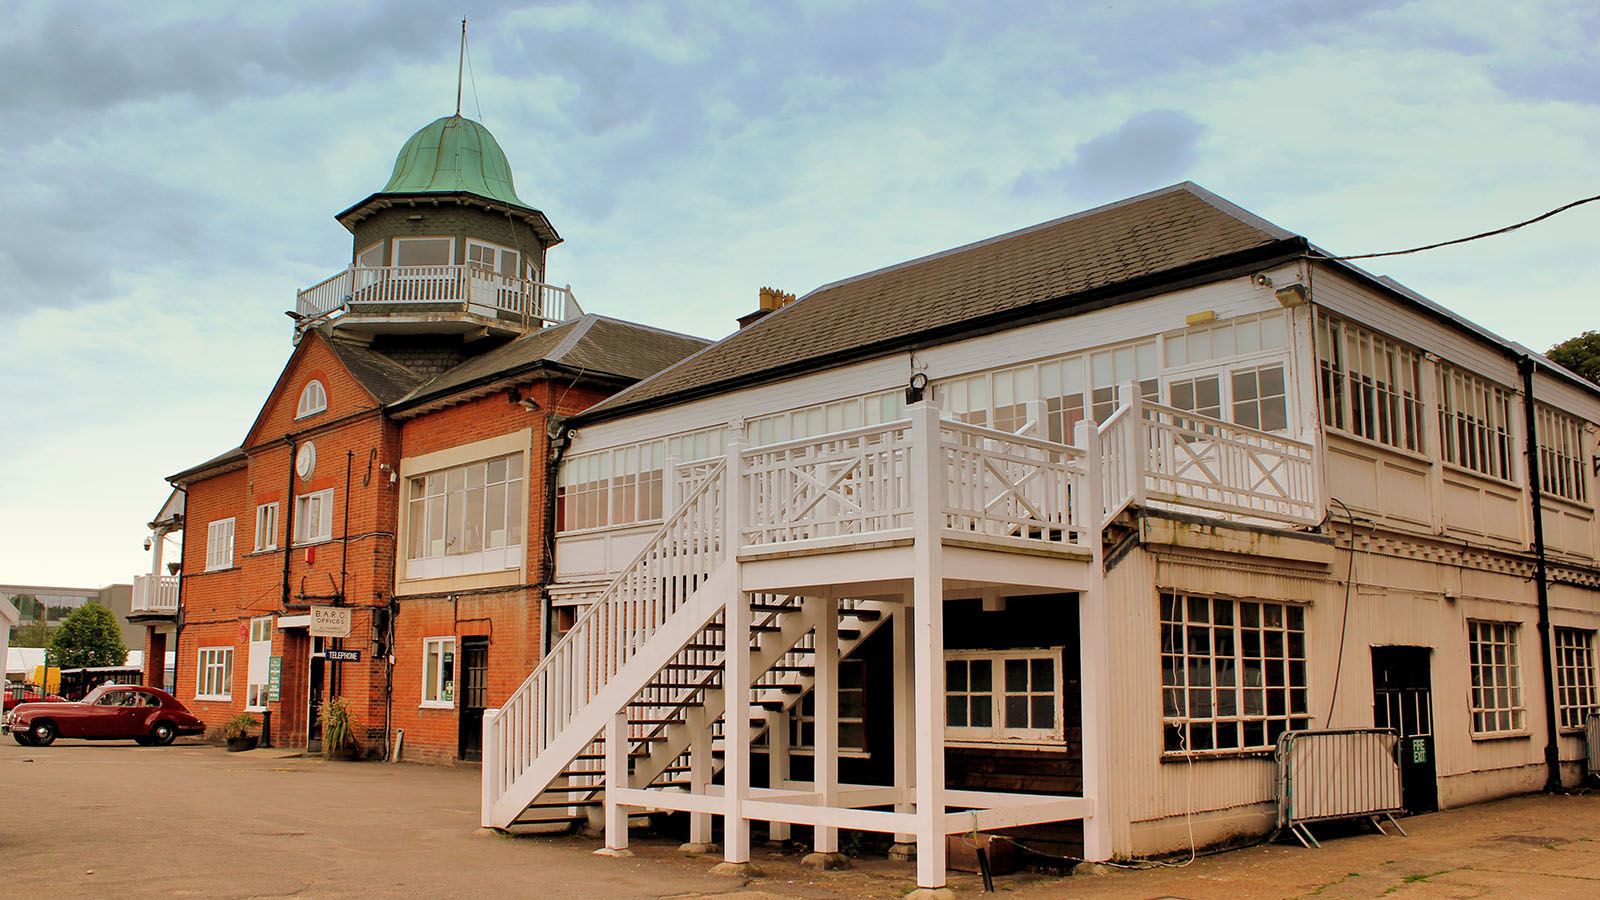 Main building at the brooklands museum in Weybridge.